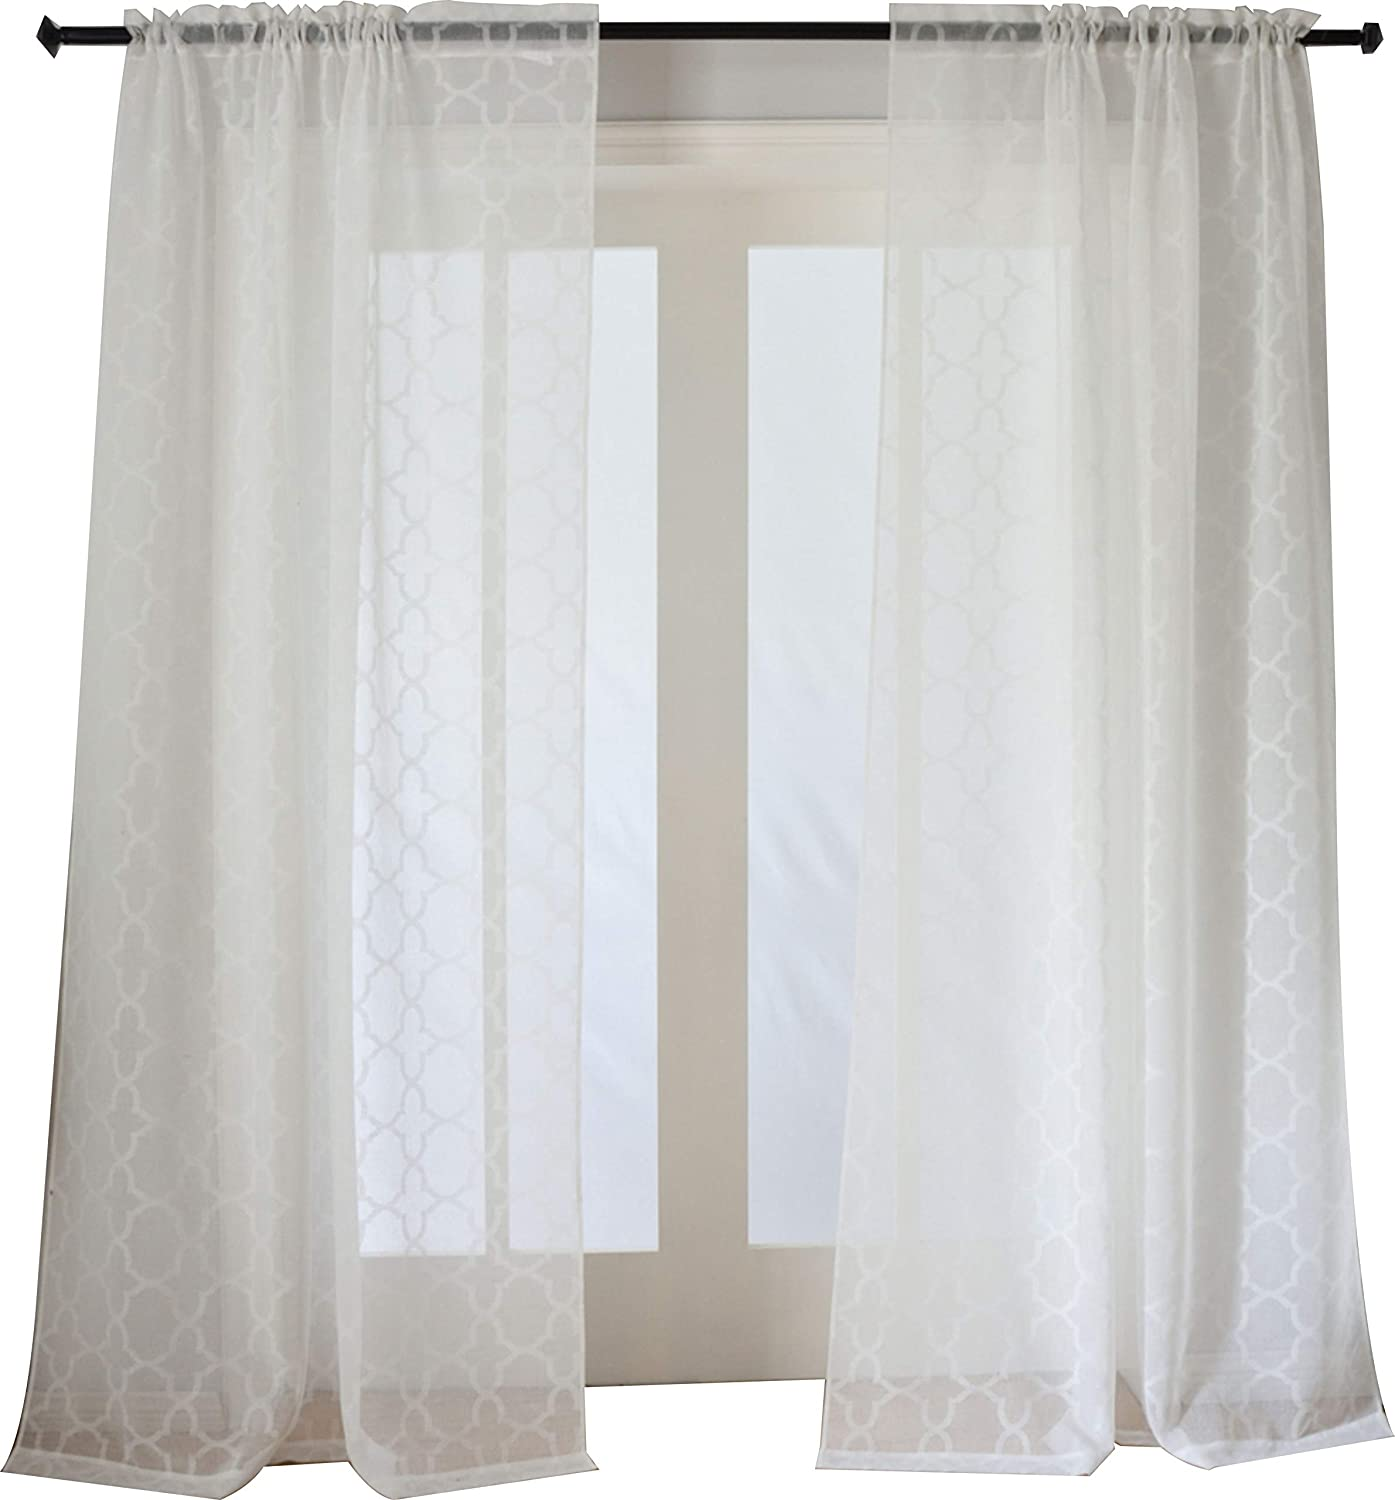 Taisier Home Off White Sheer Curtains Trellis Design Rod Pocket Semi Sheer Panels 63 Inches Long for Nursery, Geometric Sheer Curtains 2 Panels Set